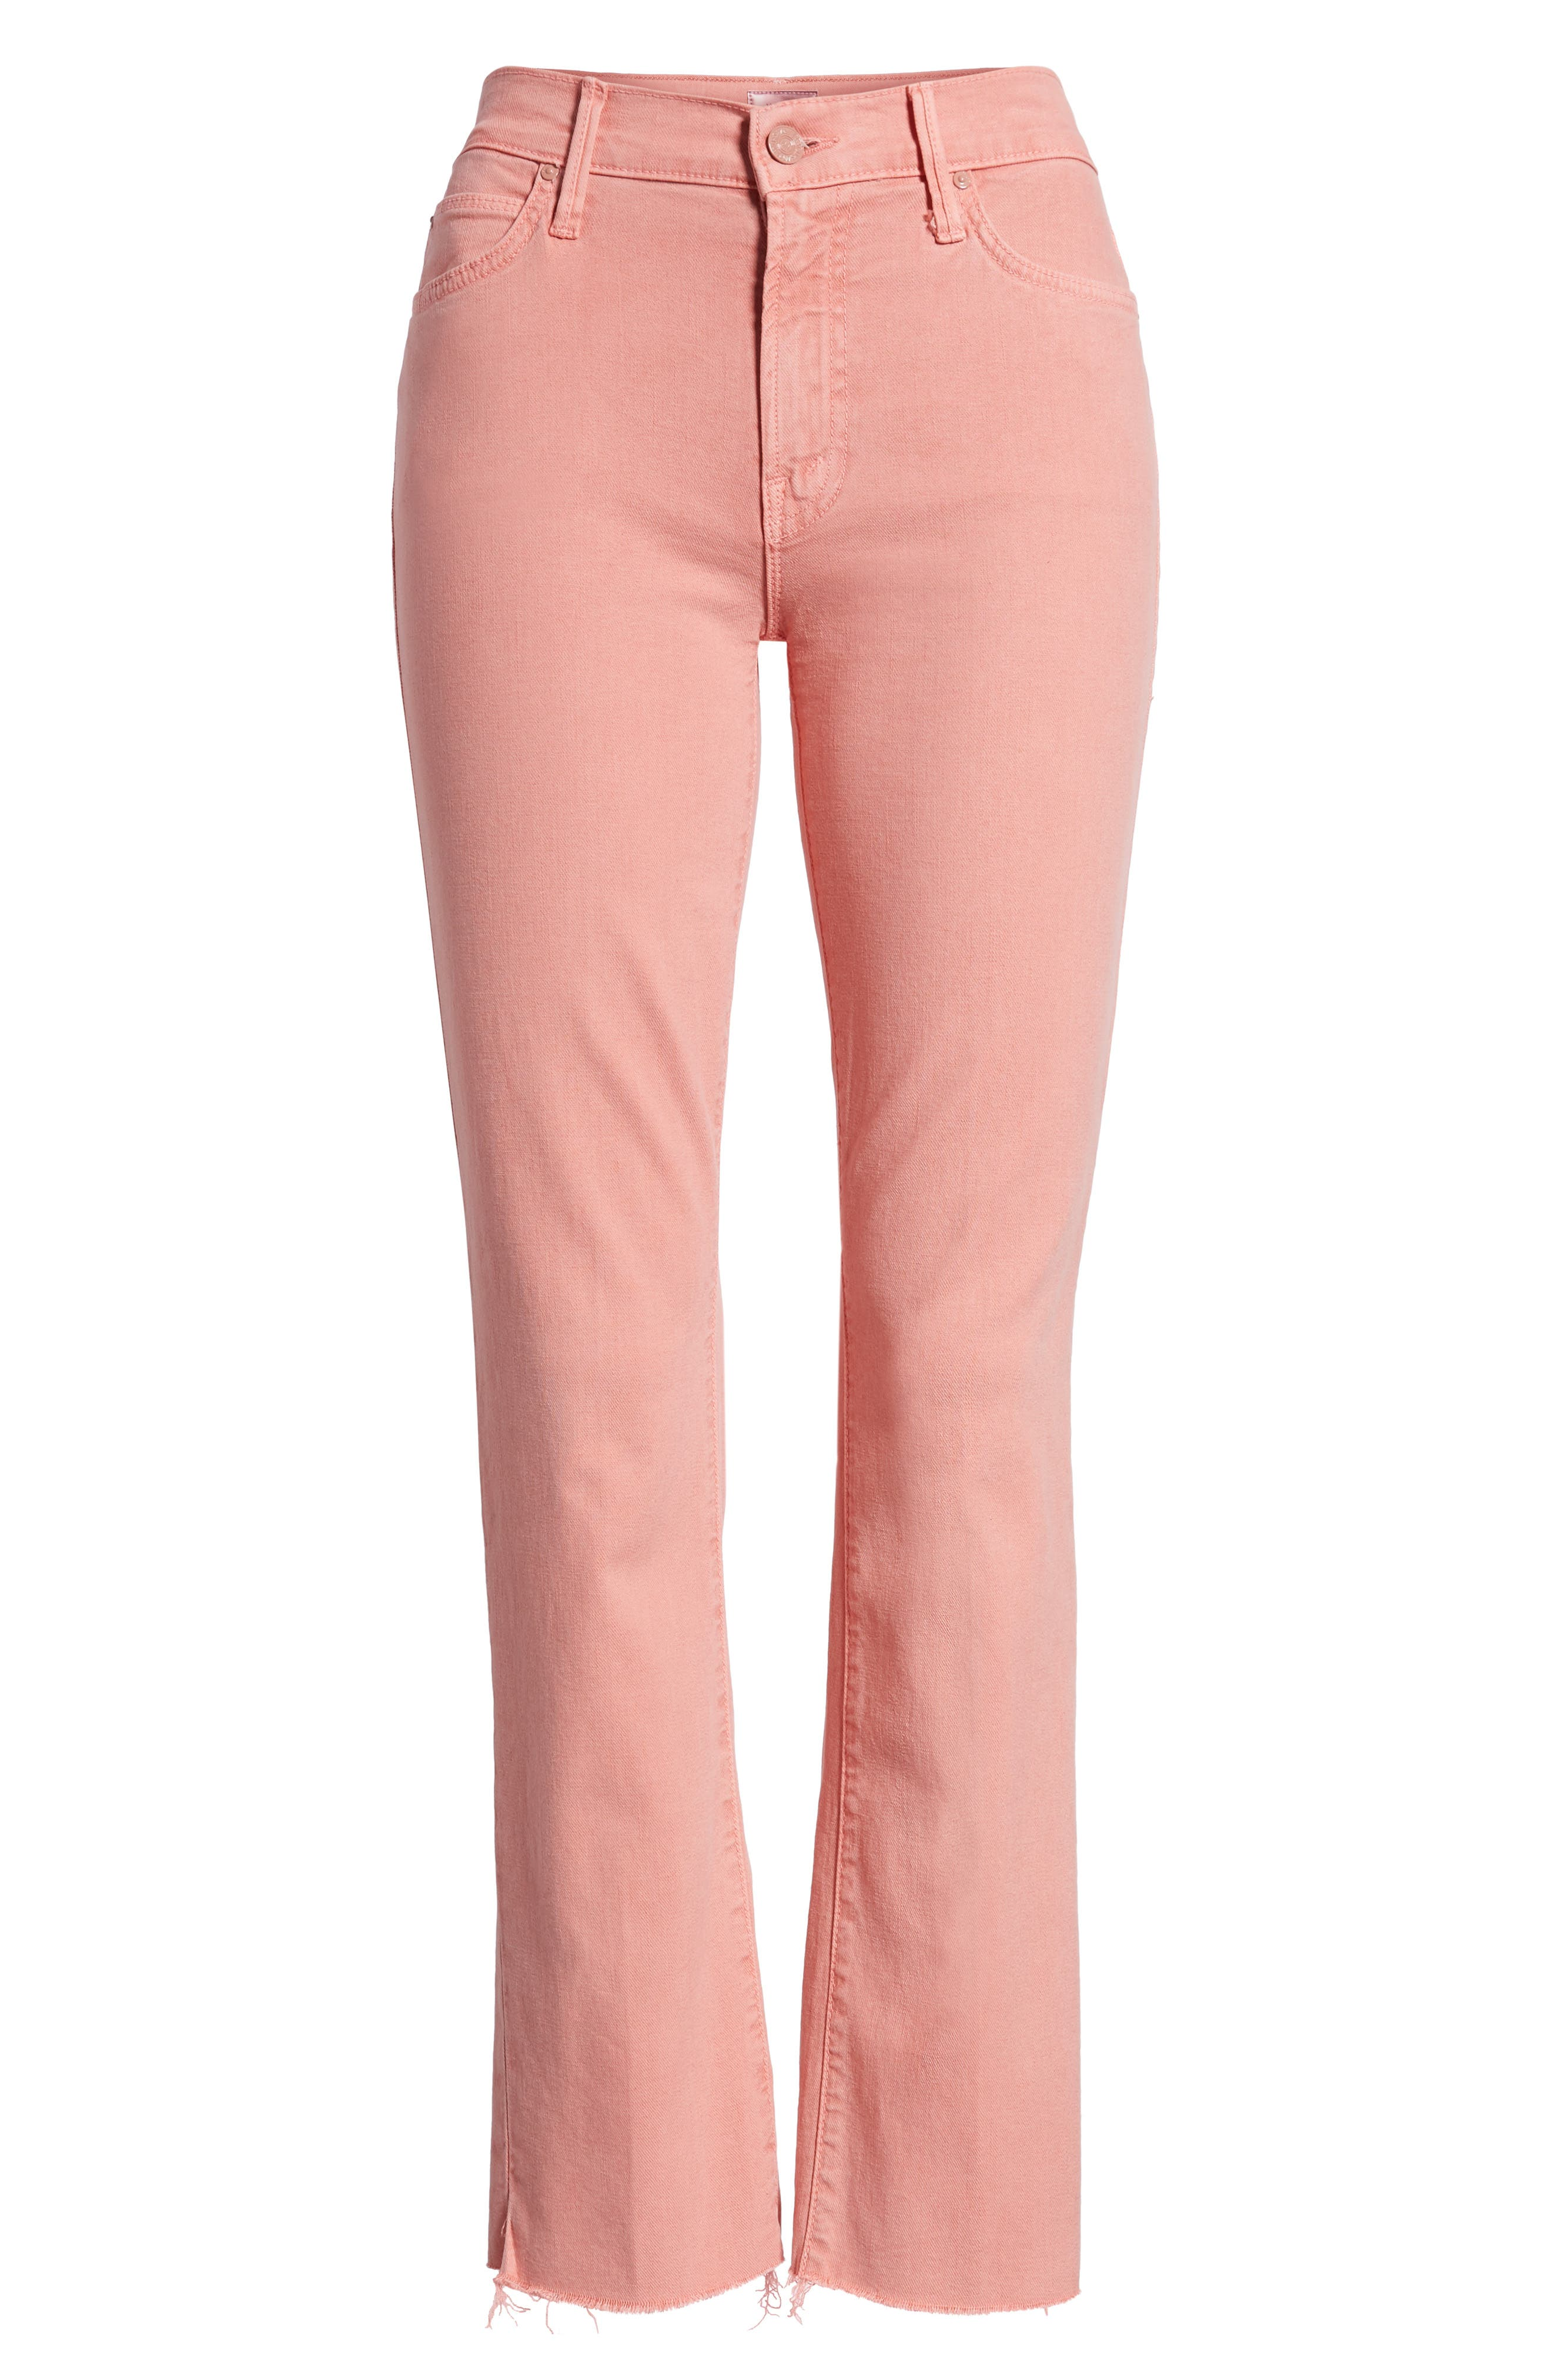 The Rascal Ankle Snippet Jeans,                             Alternate thumbnail 6, color,                             Dusty Pink